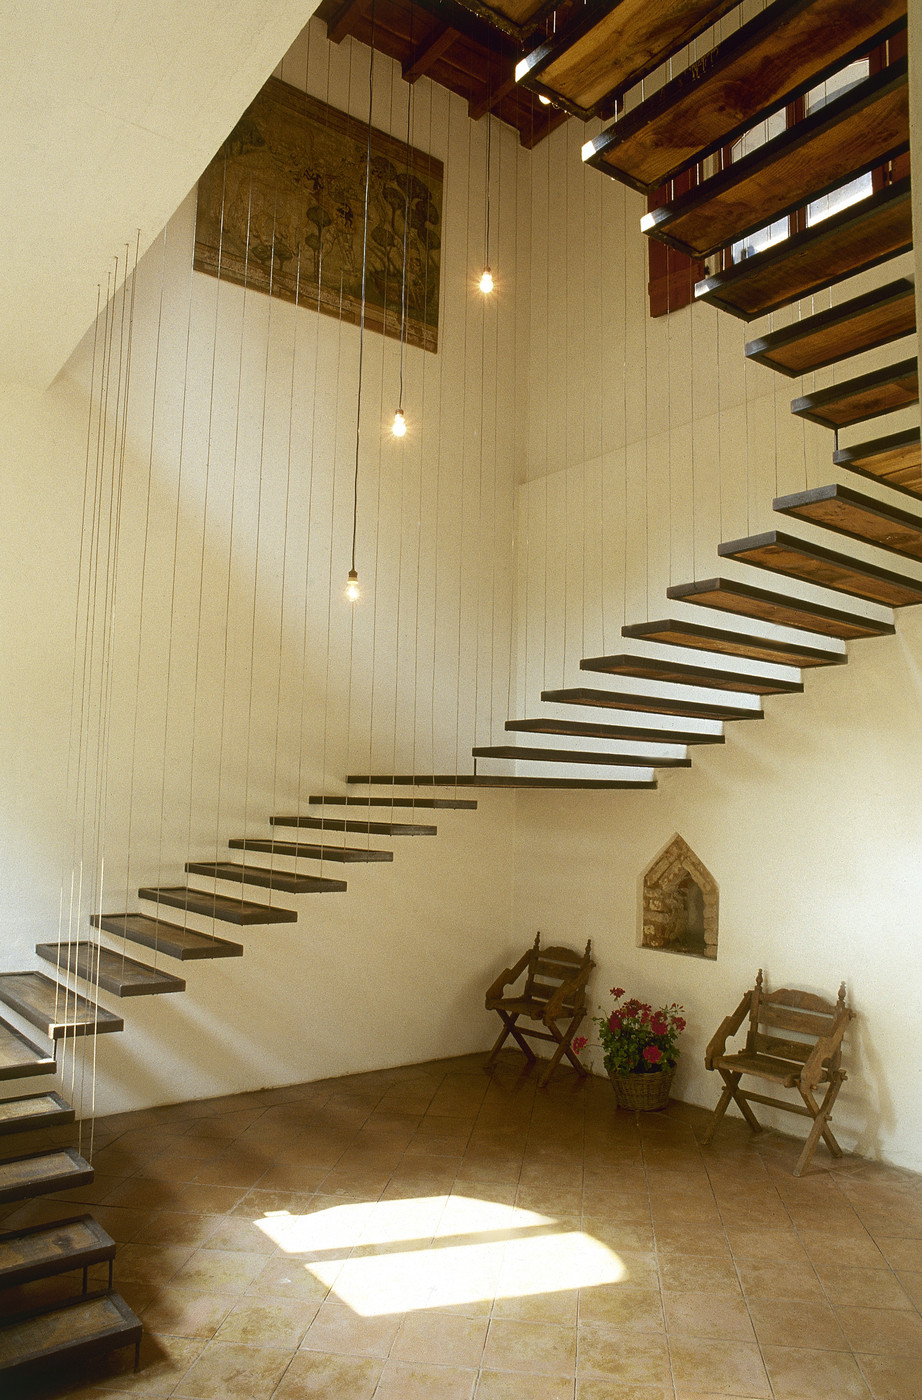 Suspended Stairs Photos Design Ideas Remodel And Decor